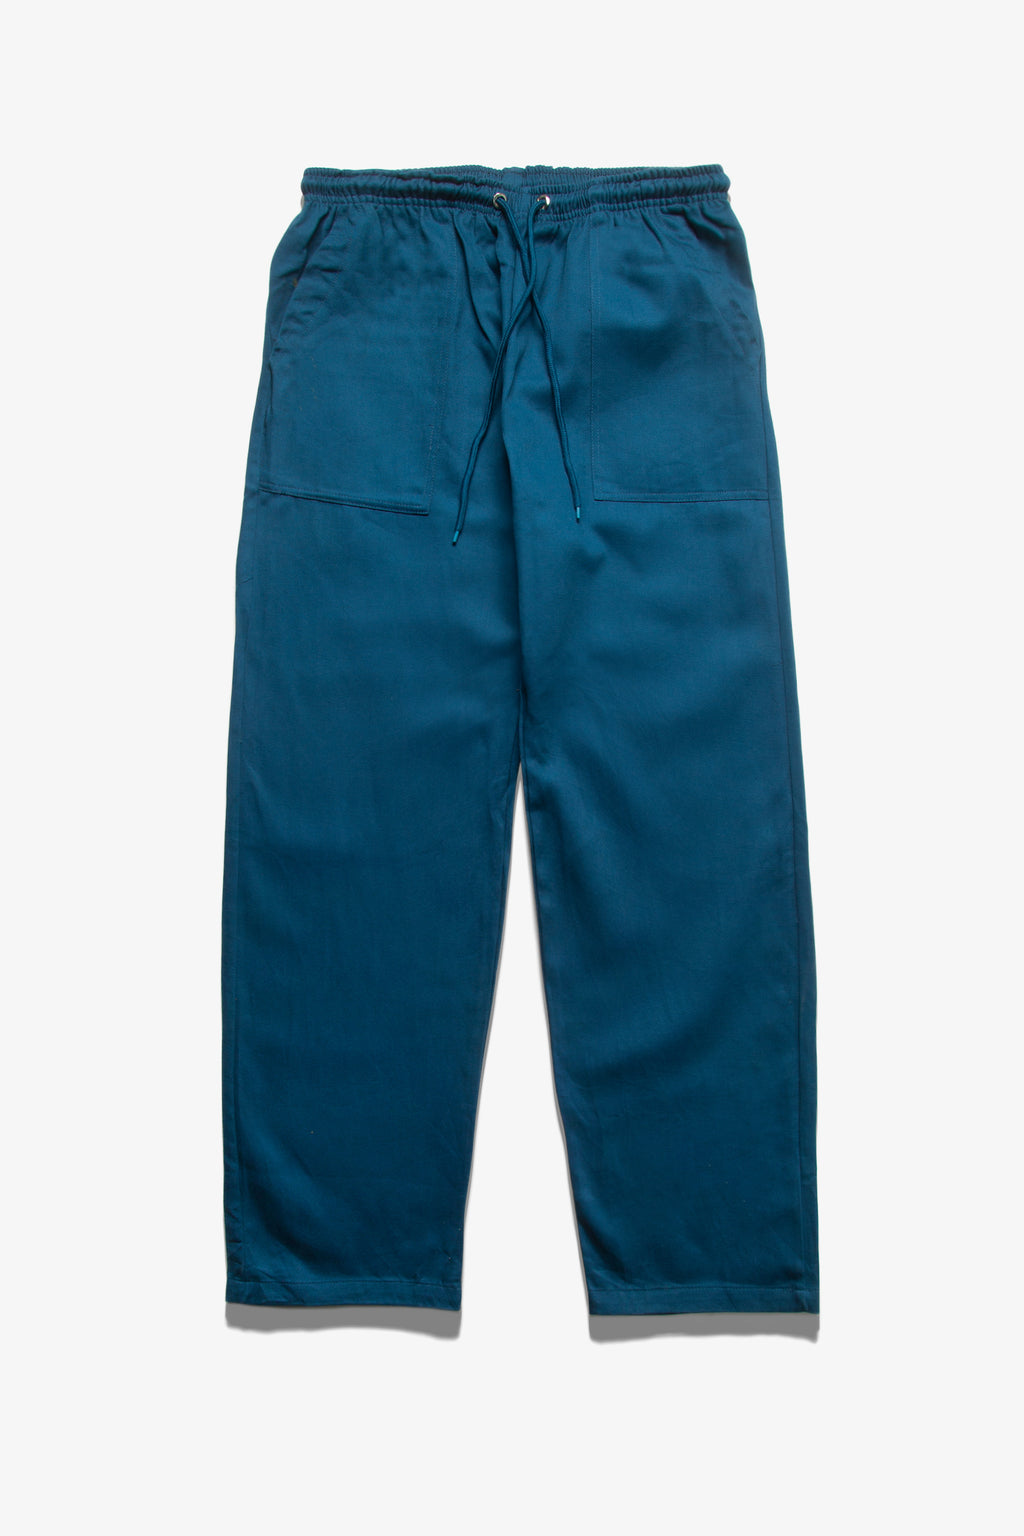 Service Works - Classic Chef Pants - Teal